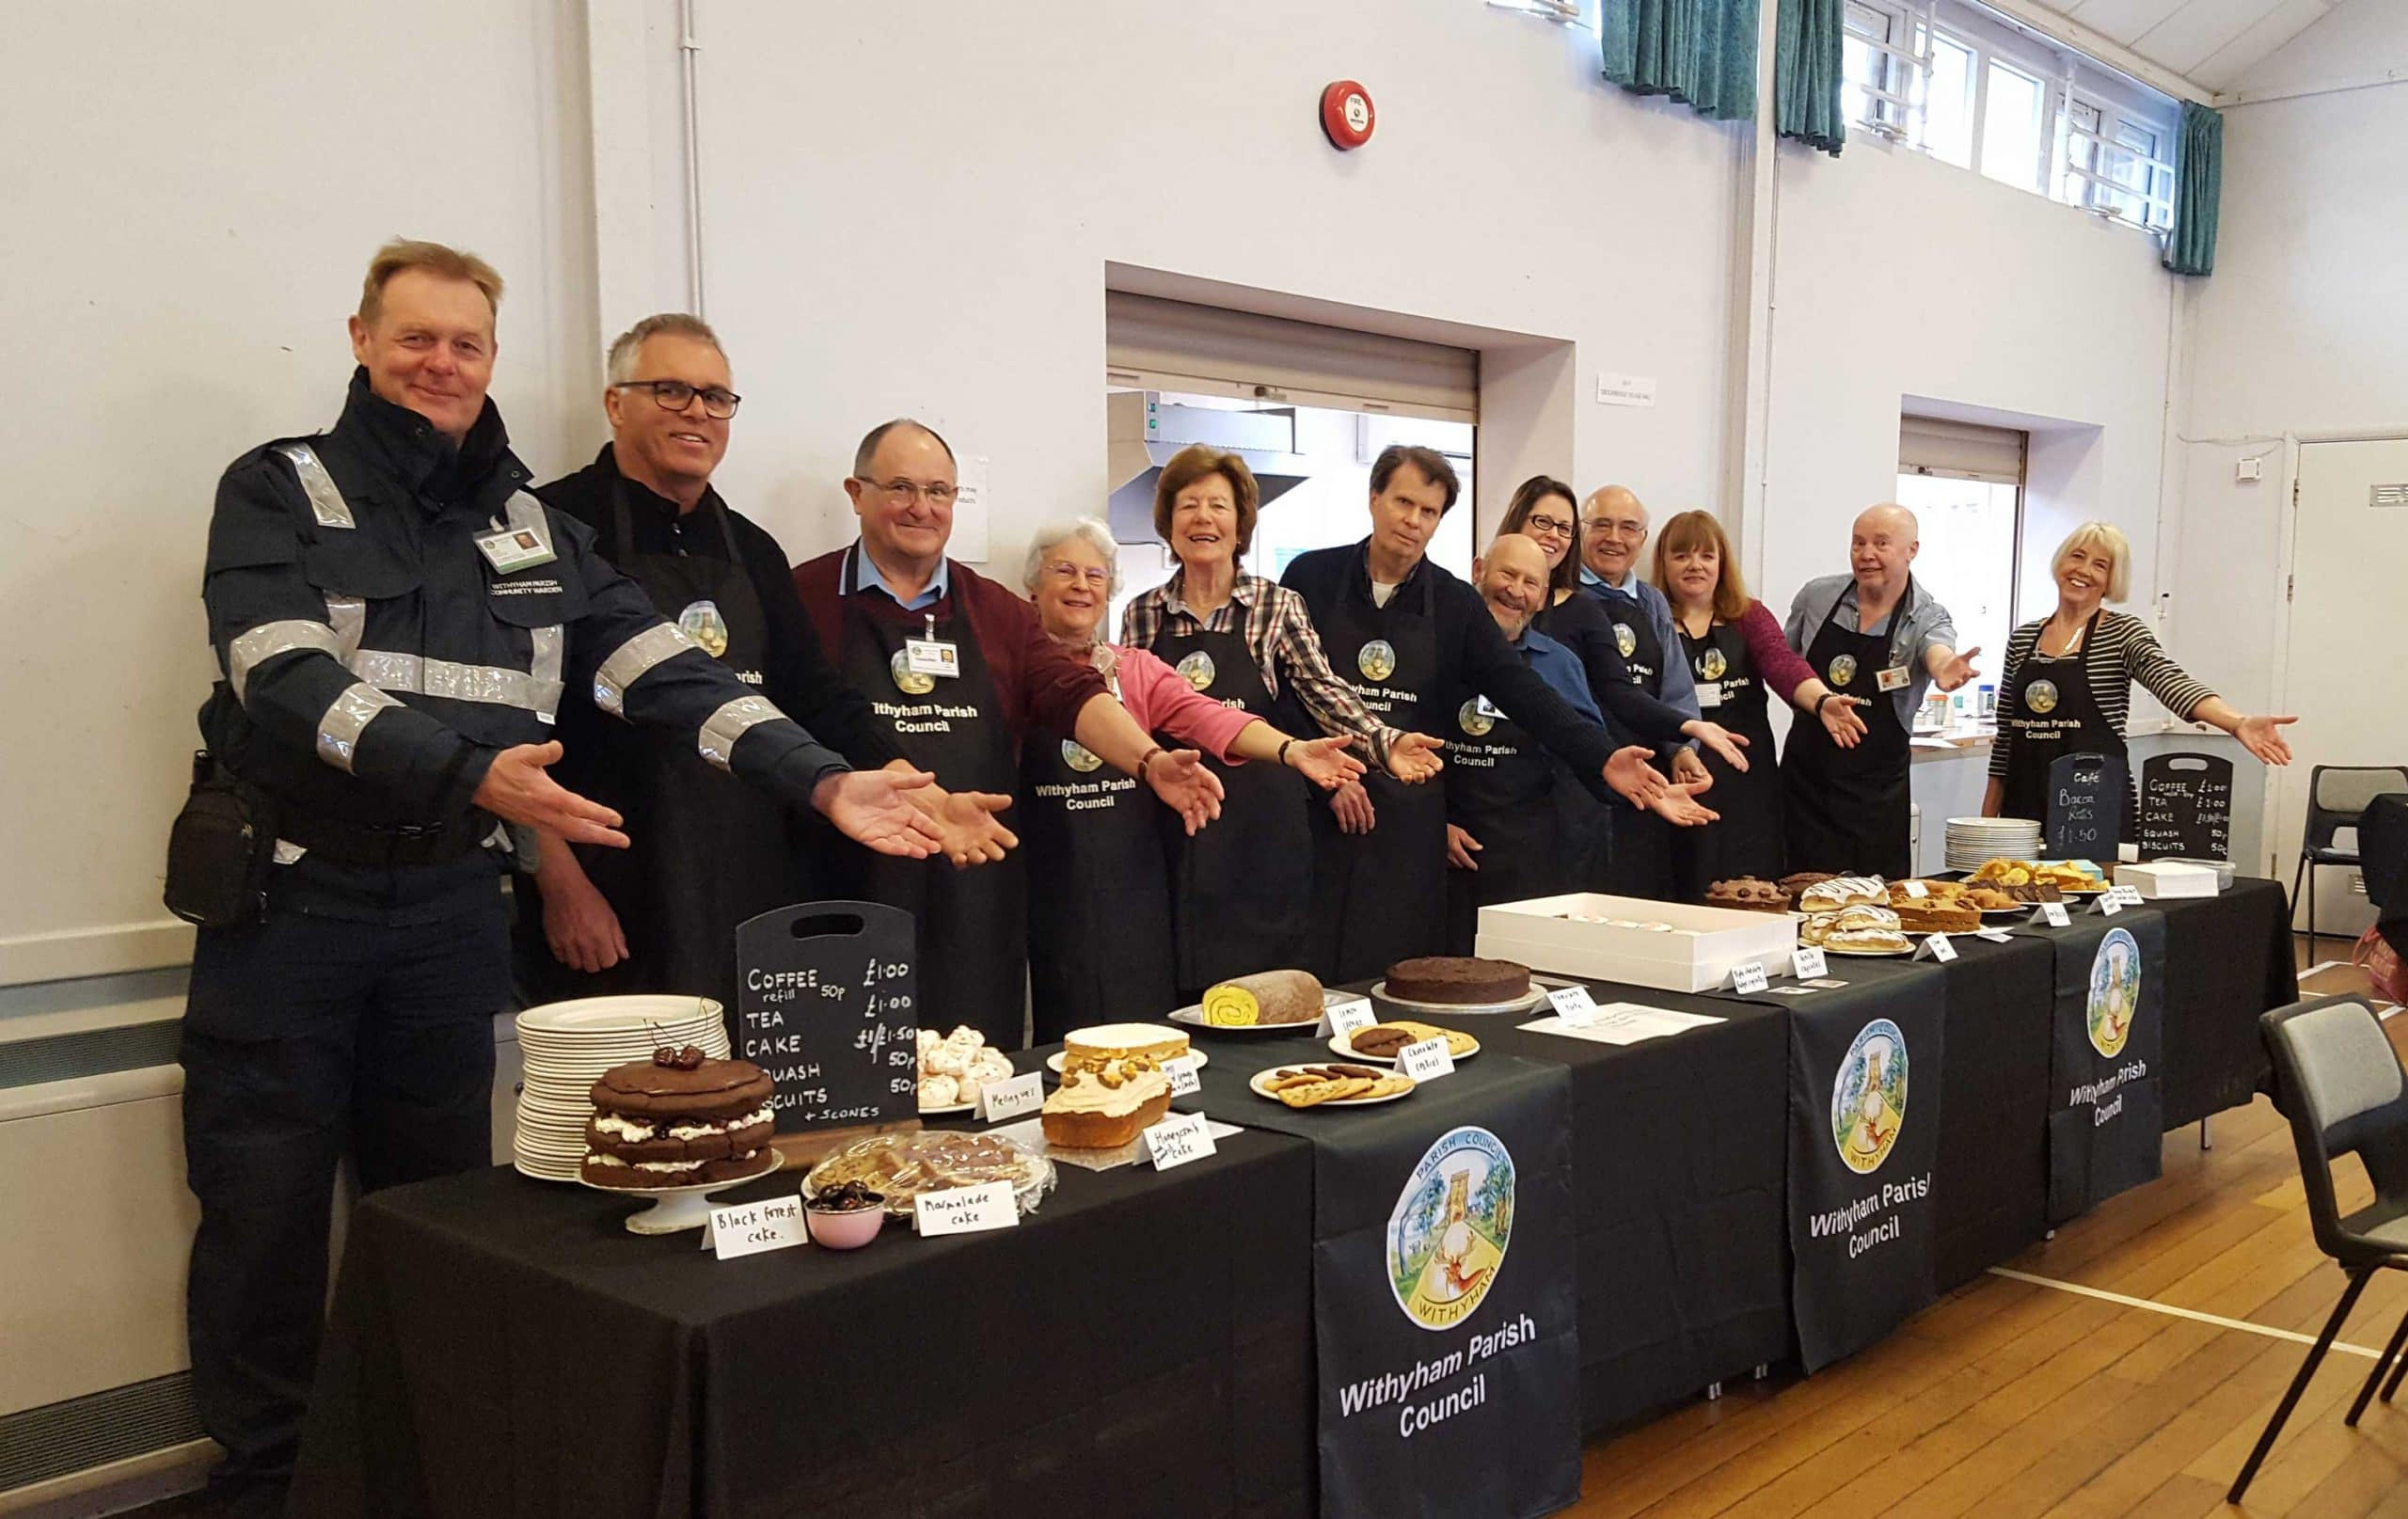 Withyham Parish Council Bake Sale